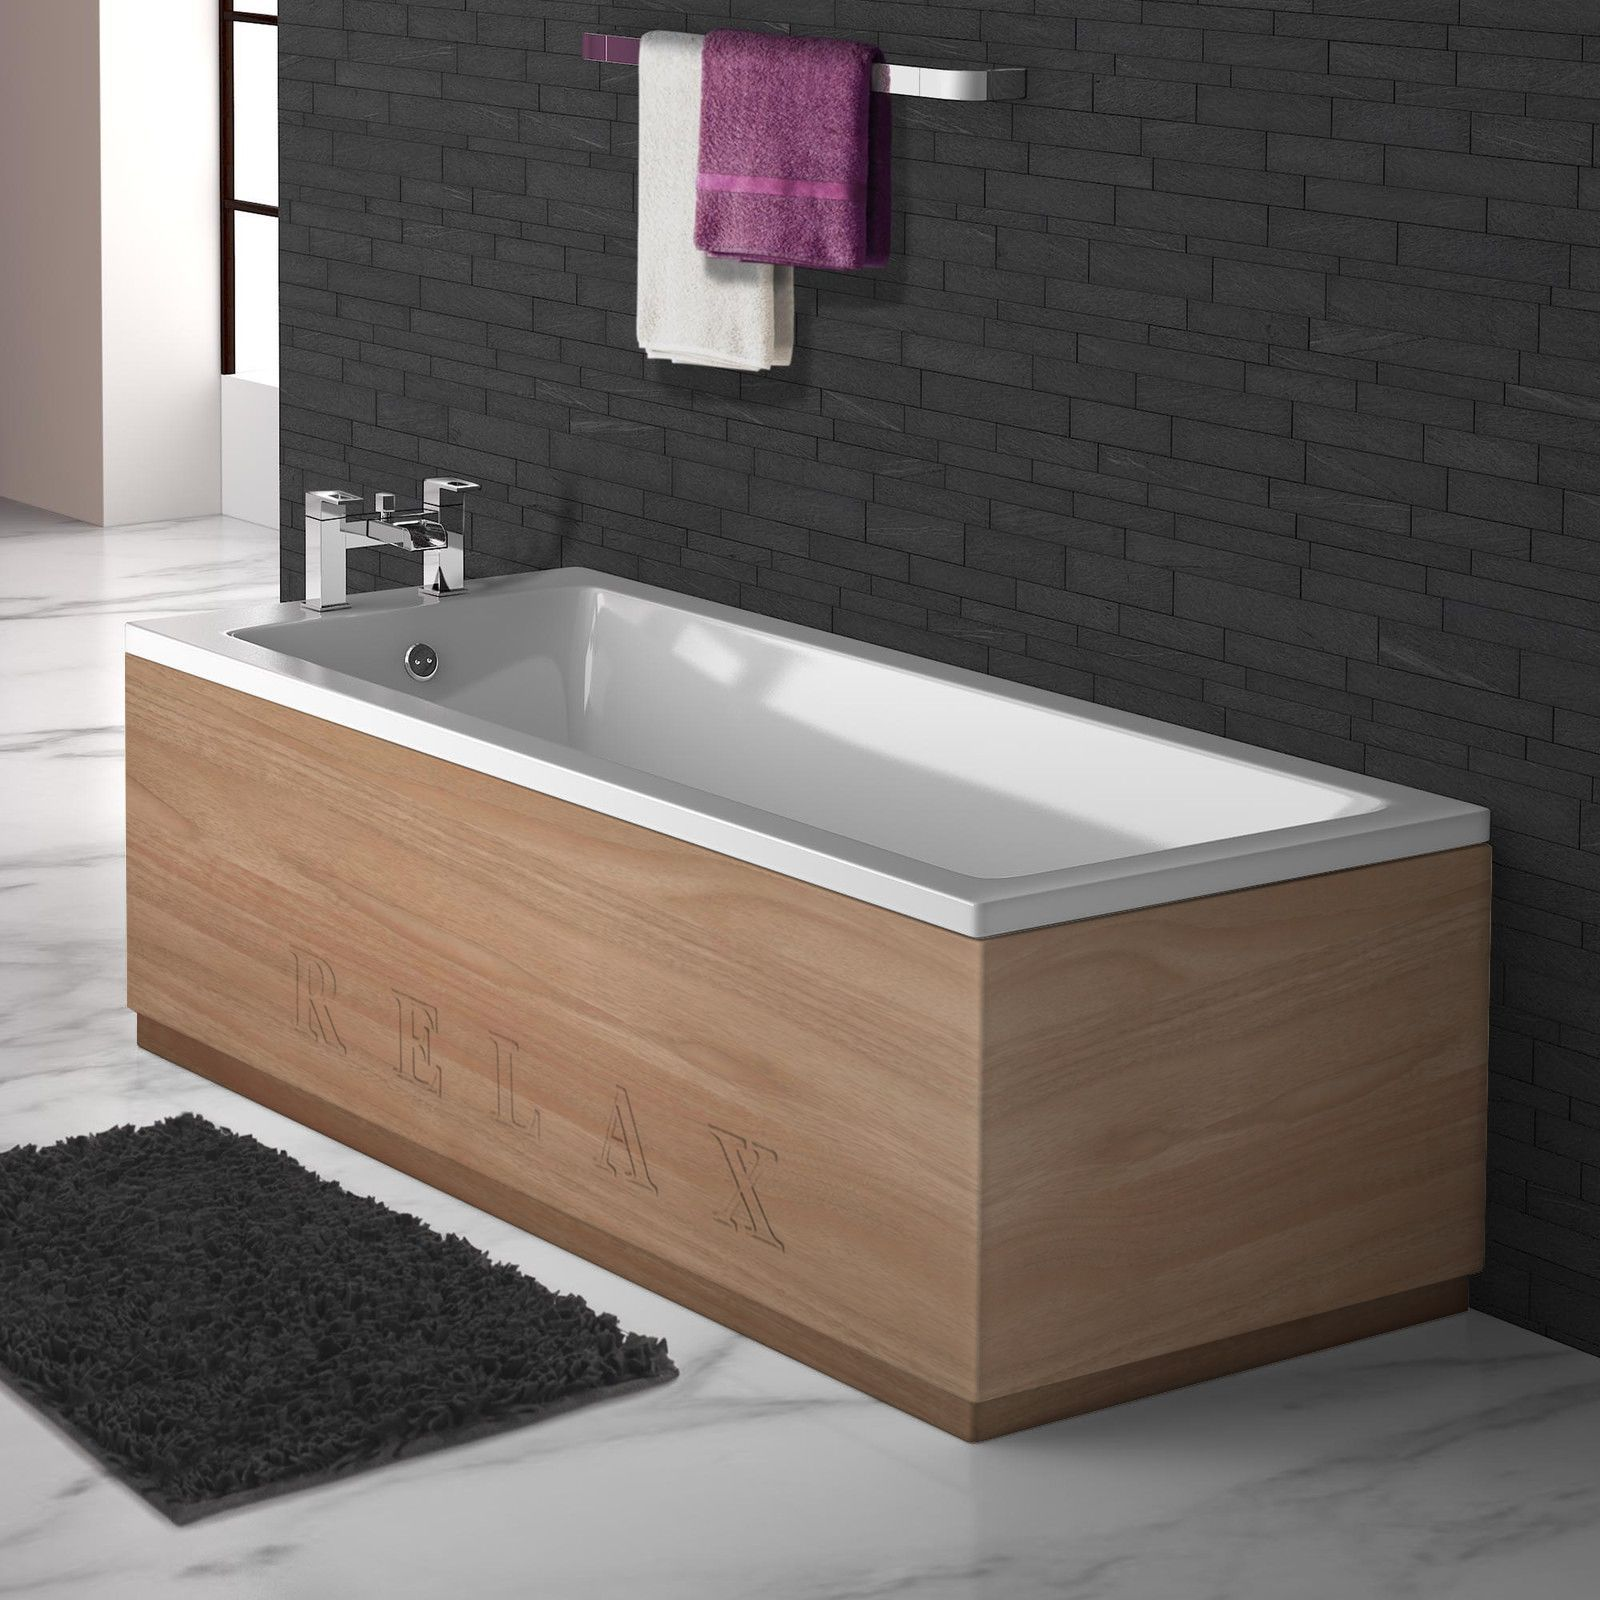 Matt Walnut Bath Panels